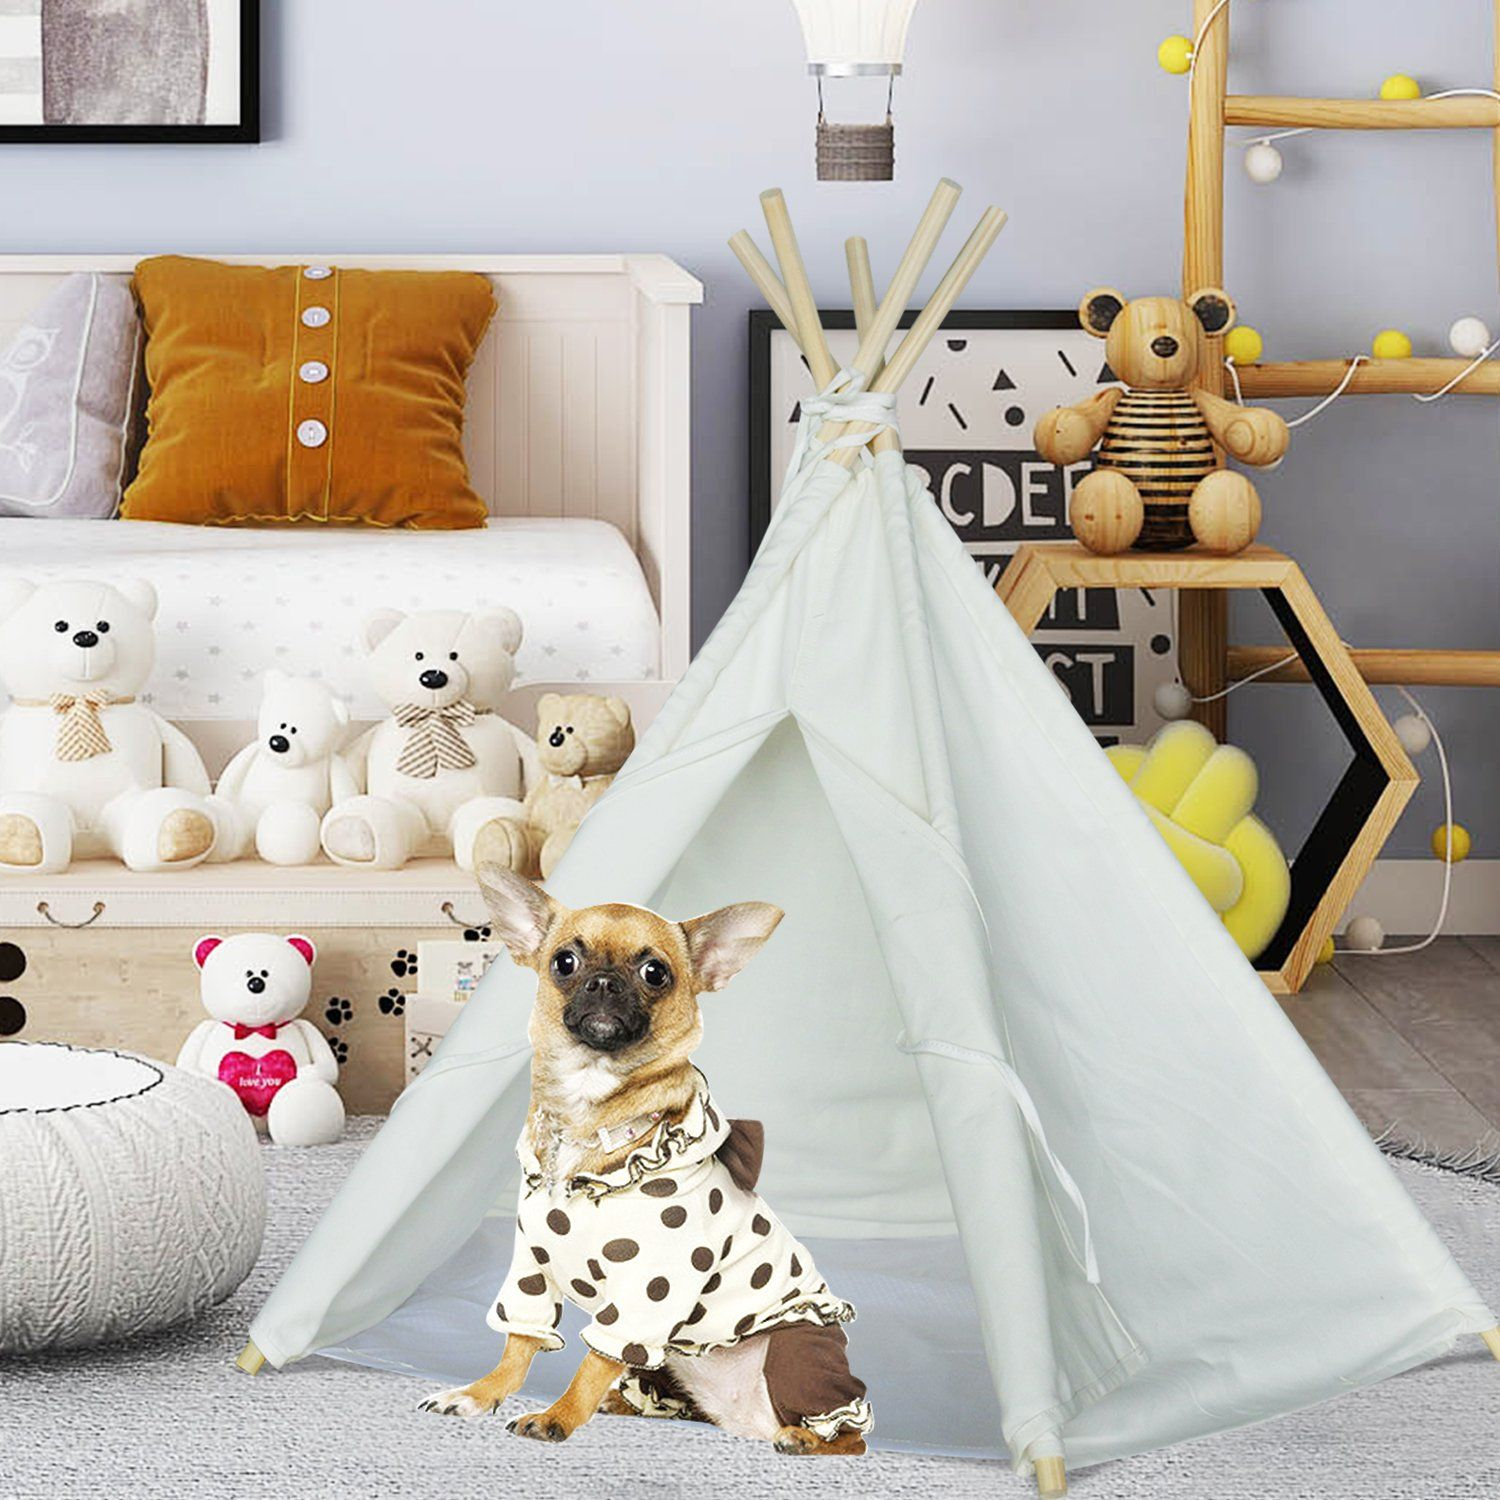 Pet teepee Tent for Dogs Puppy Cat Bed Portable White